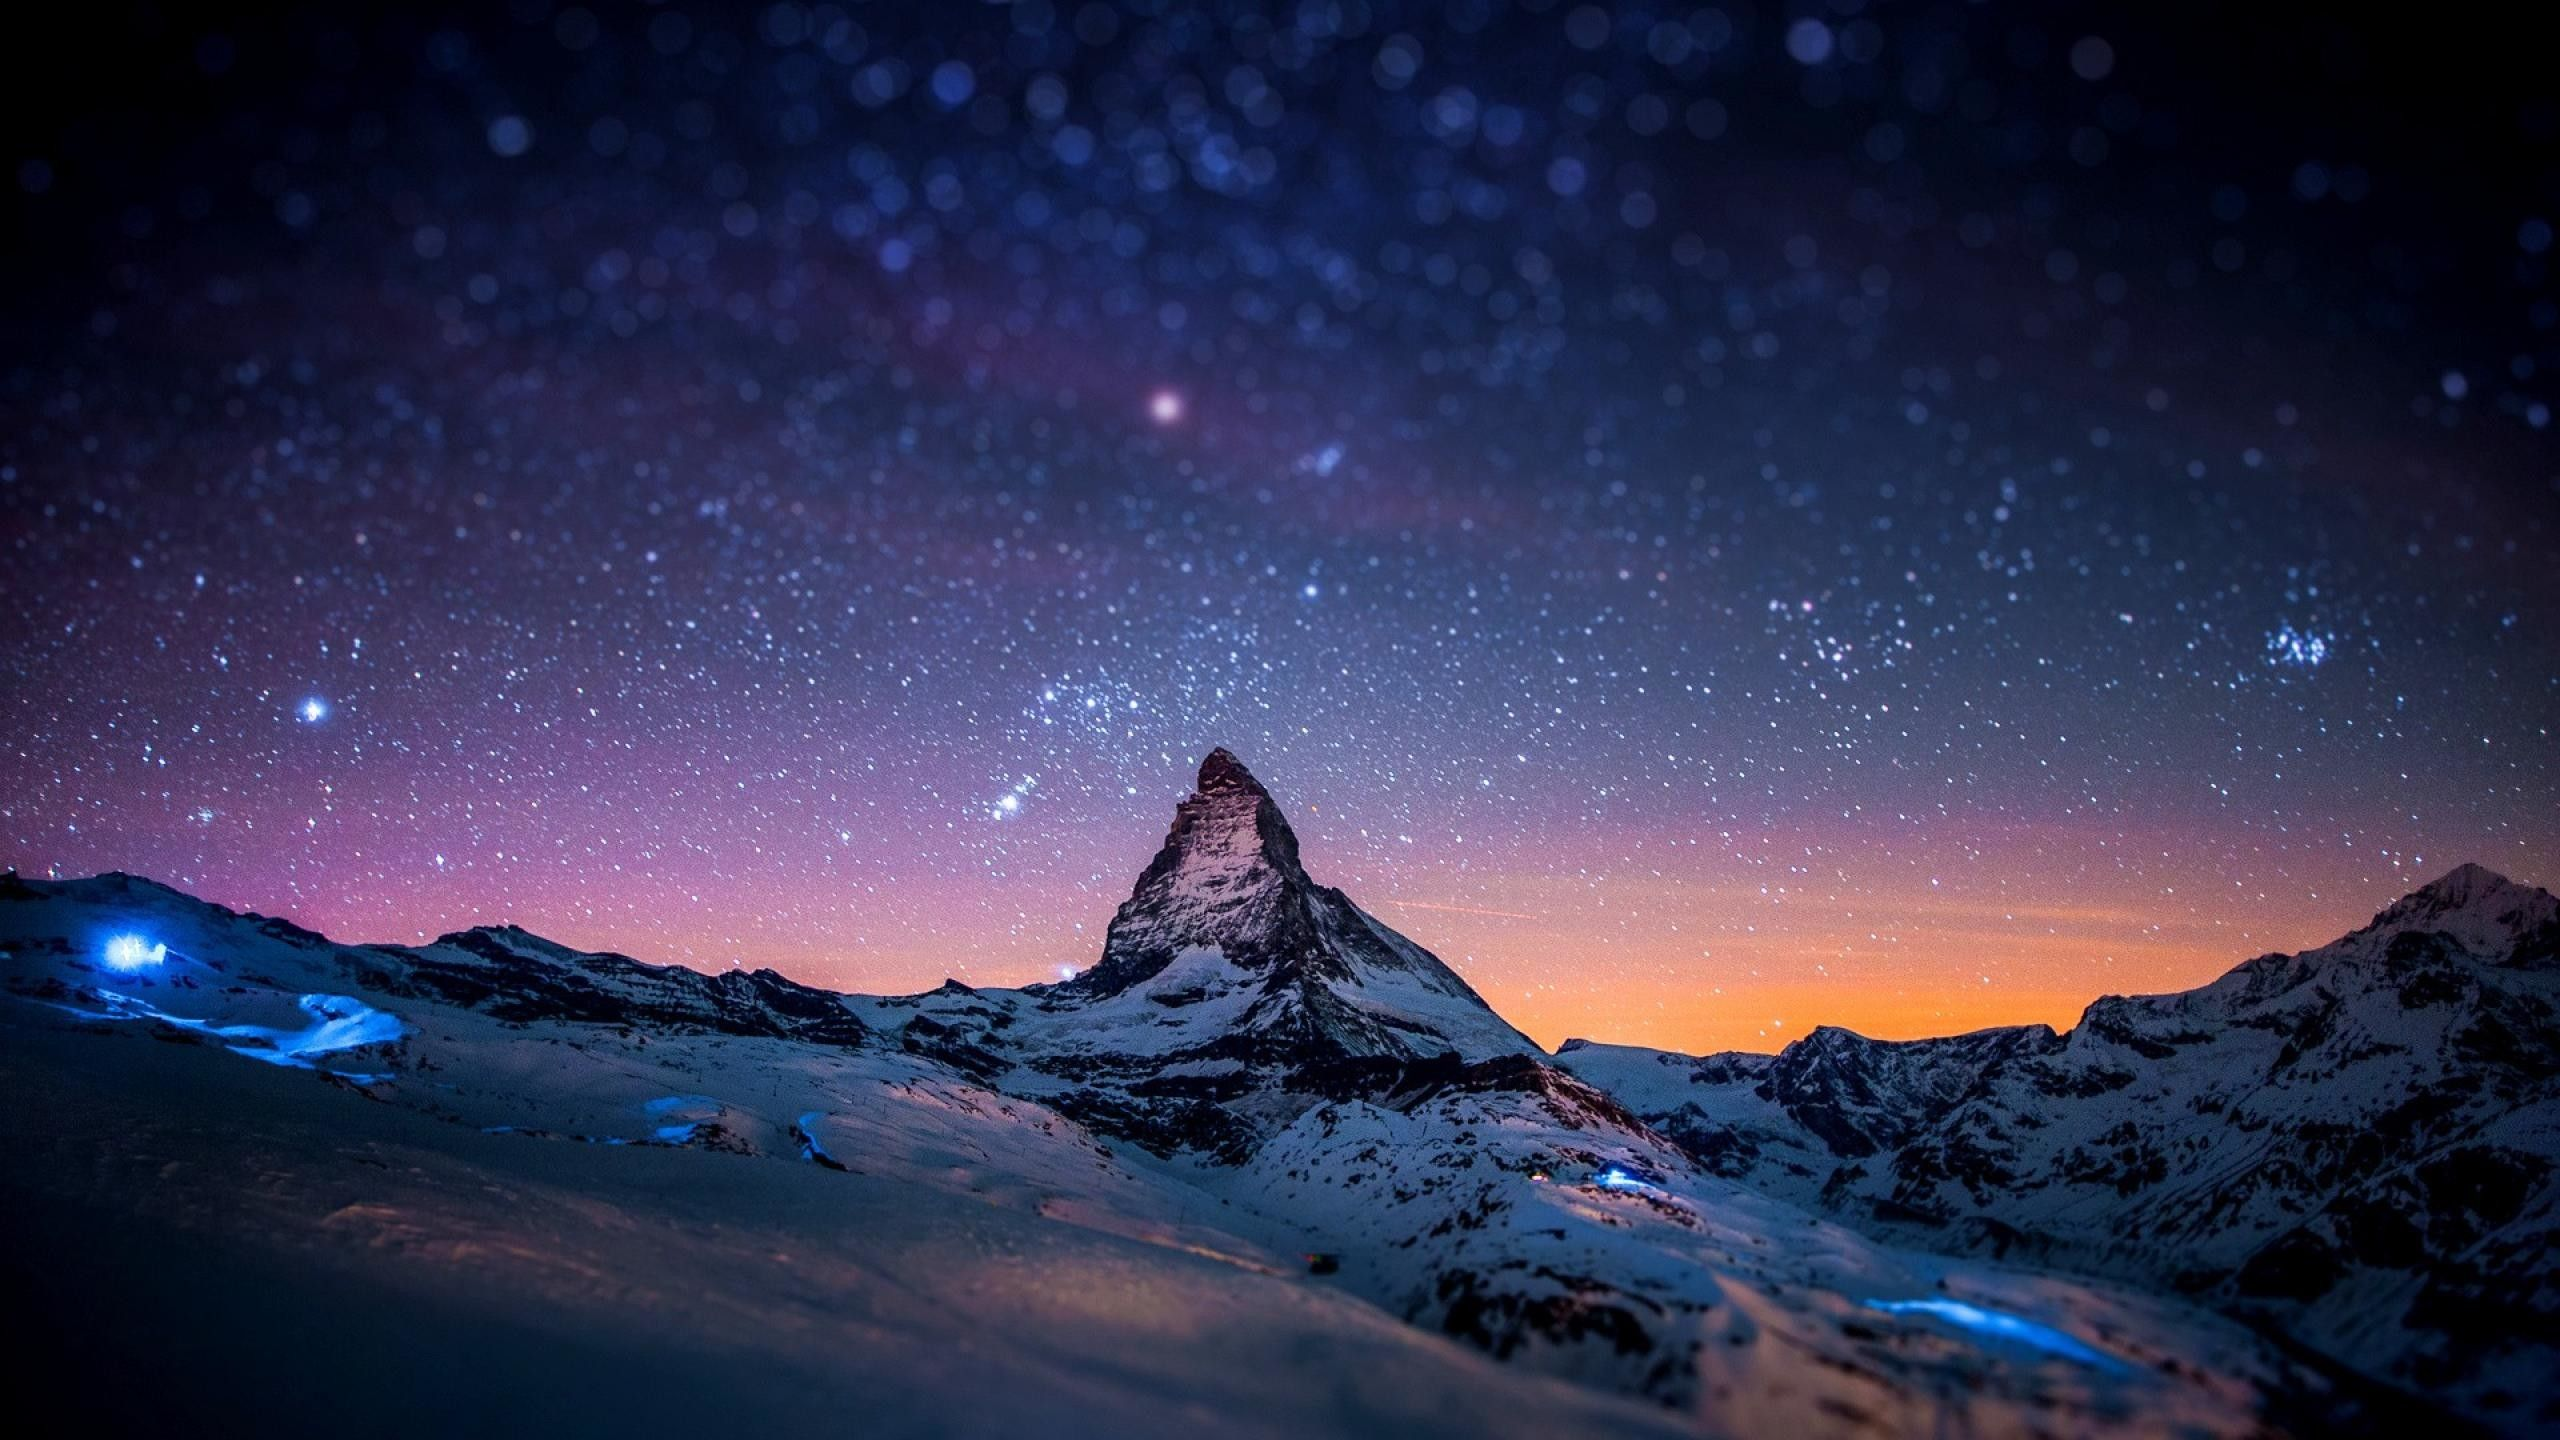 Night View Of Sky Full Of Stars Earth Pictures Matterhorn Mountain Pictures Of The Week